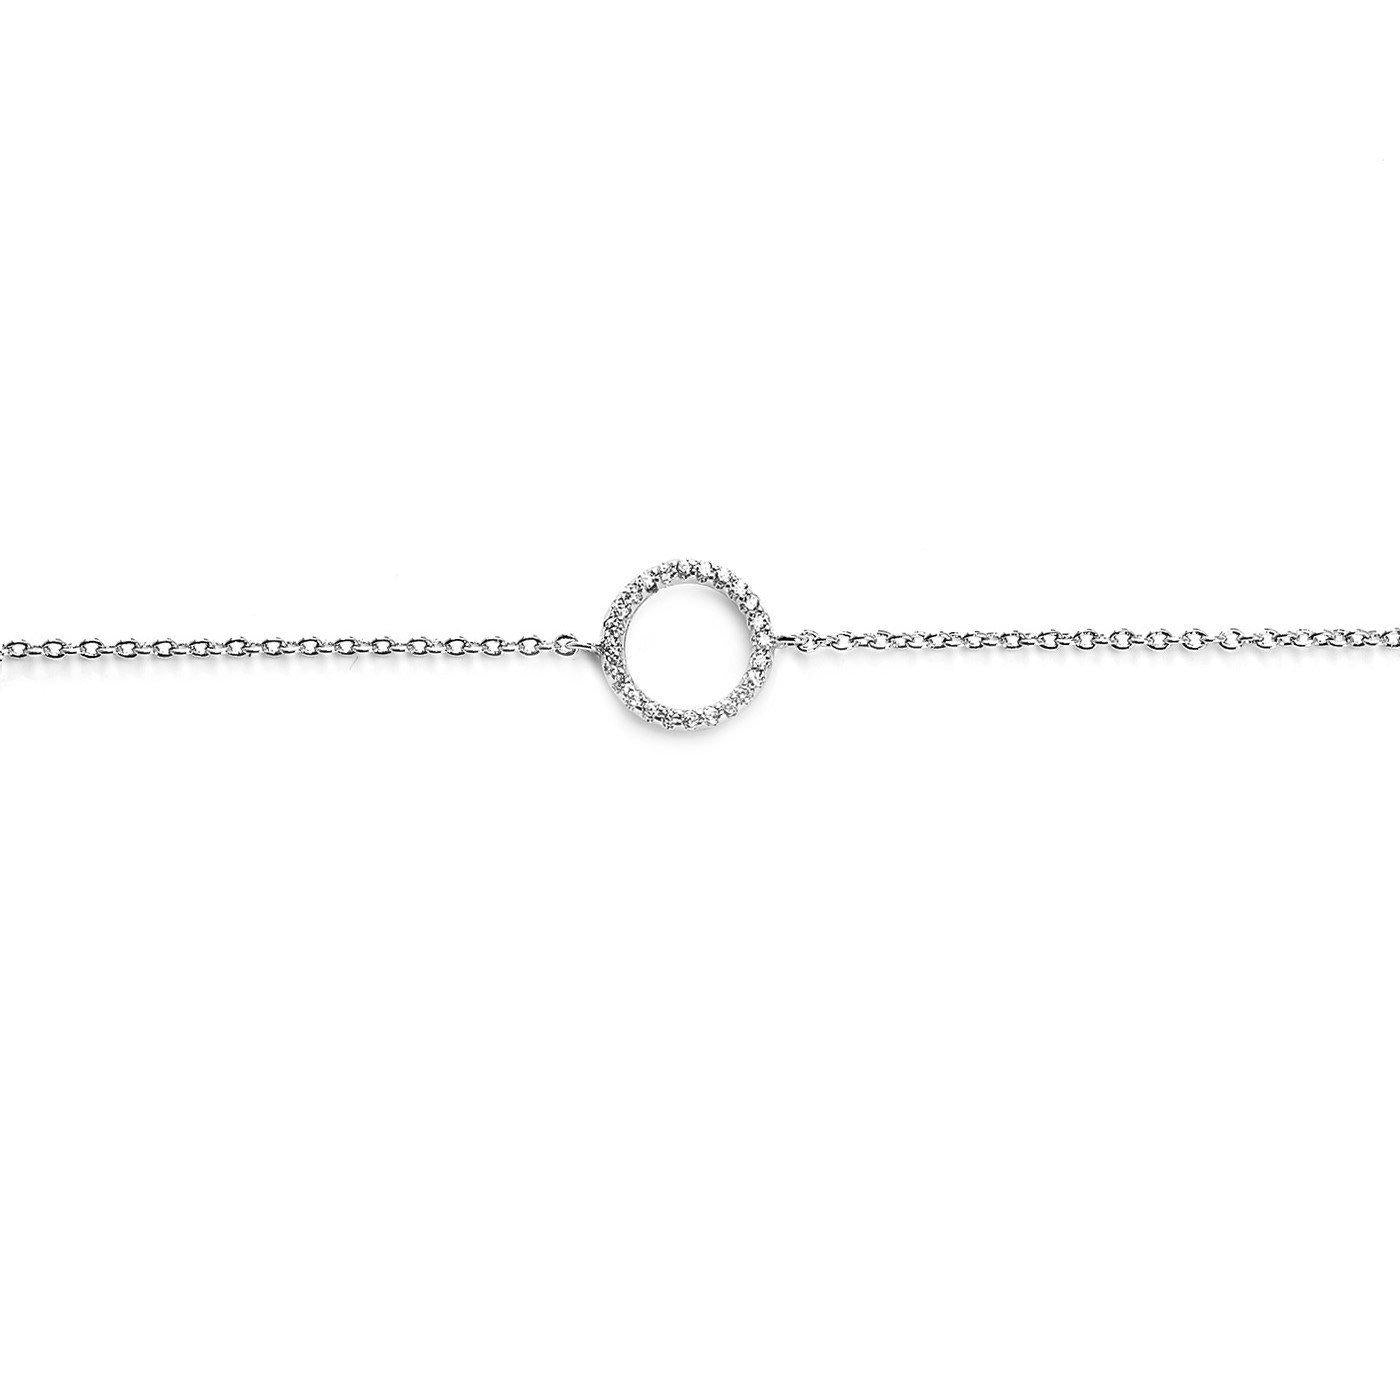 Your initial O Bracelet-Blinglane